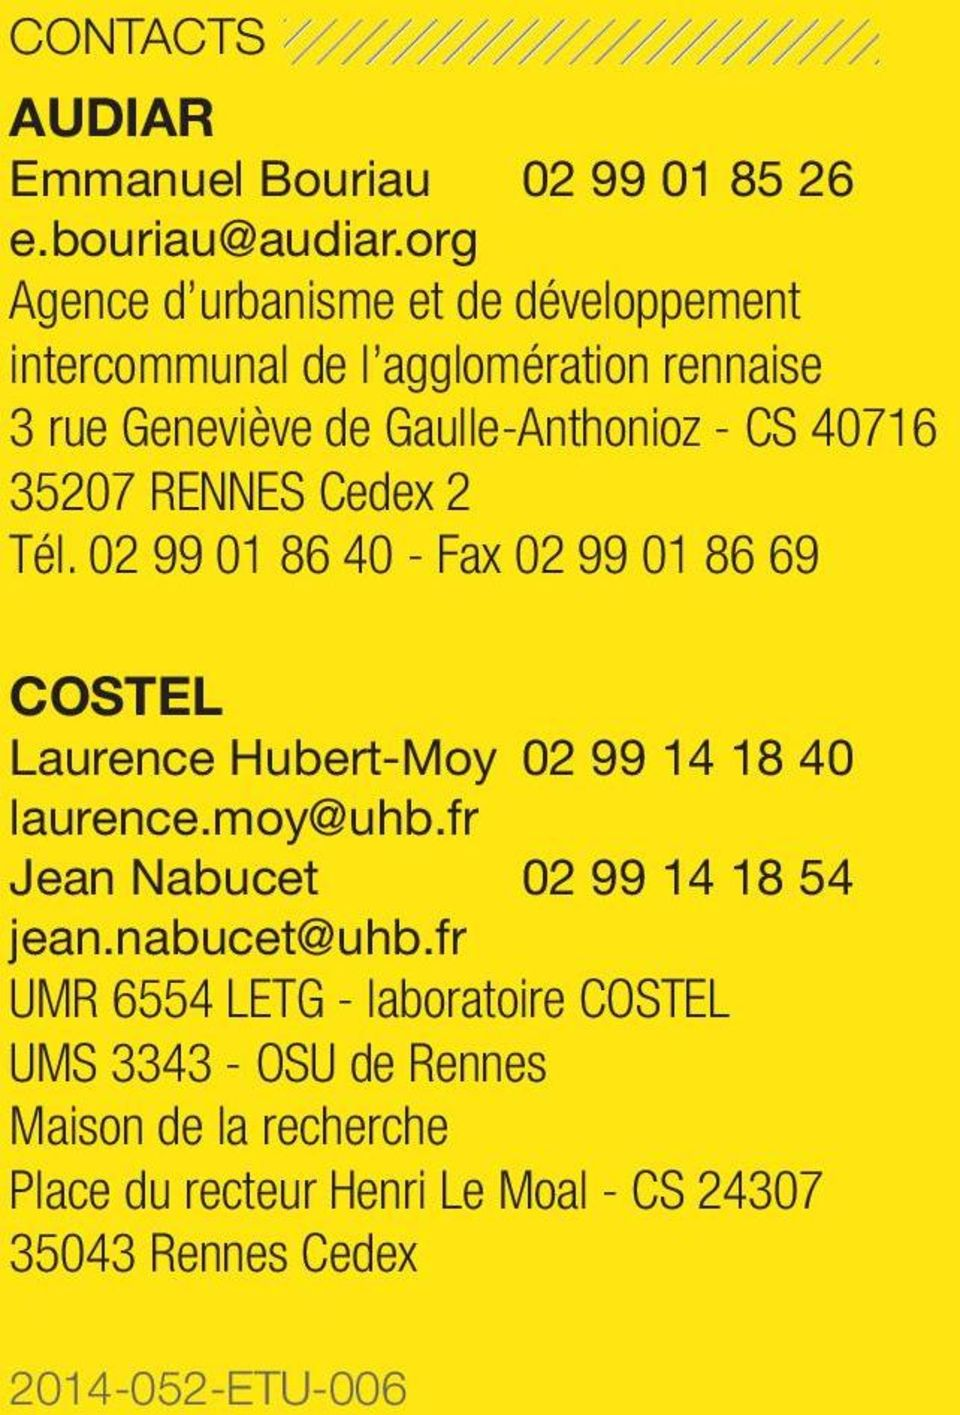 35207 RENNES Cedex 2 Tél. 02 99 01 86 40 - Fax 02 99 01 86 69 COSTEL Laurence Hubert-Moy 02 99 14 18 40 laurence.moy@uhb.